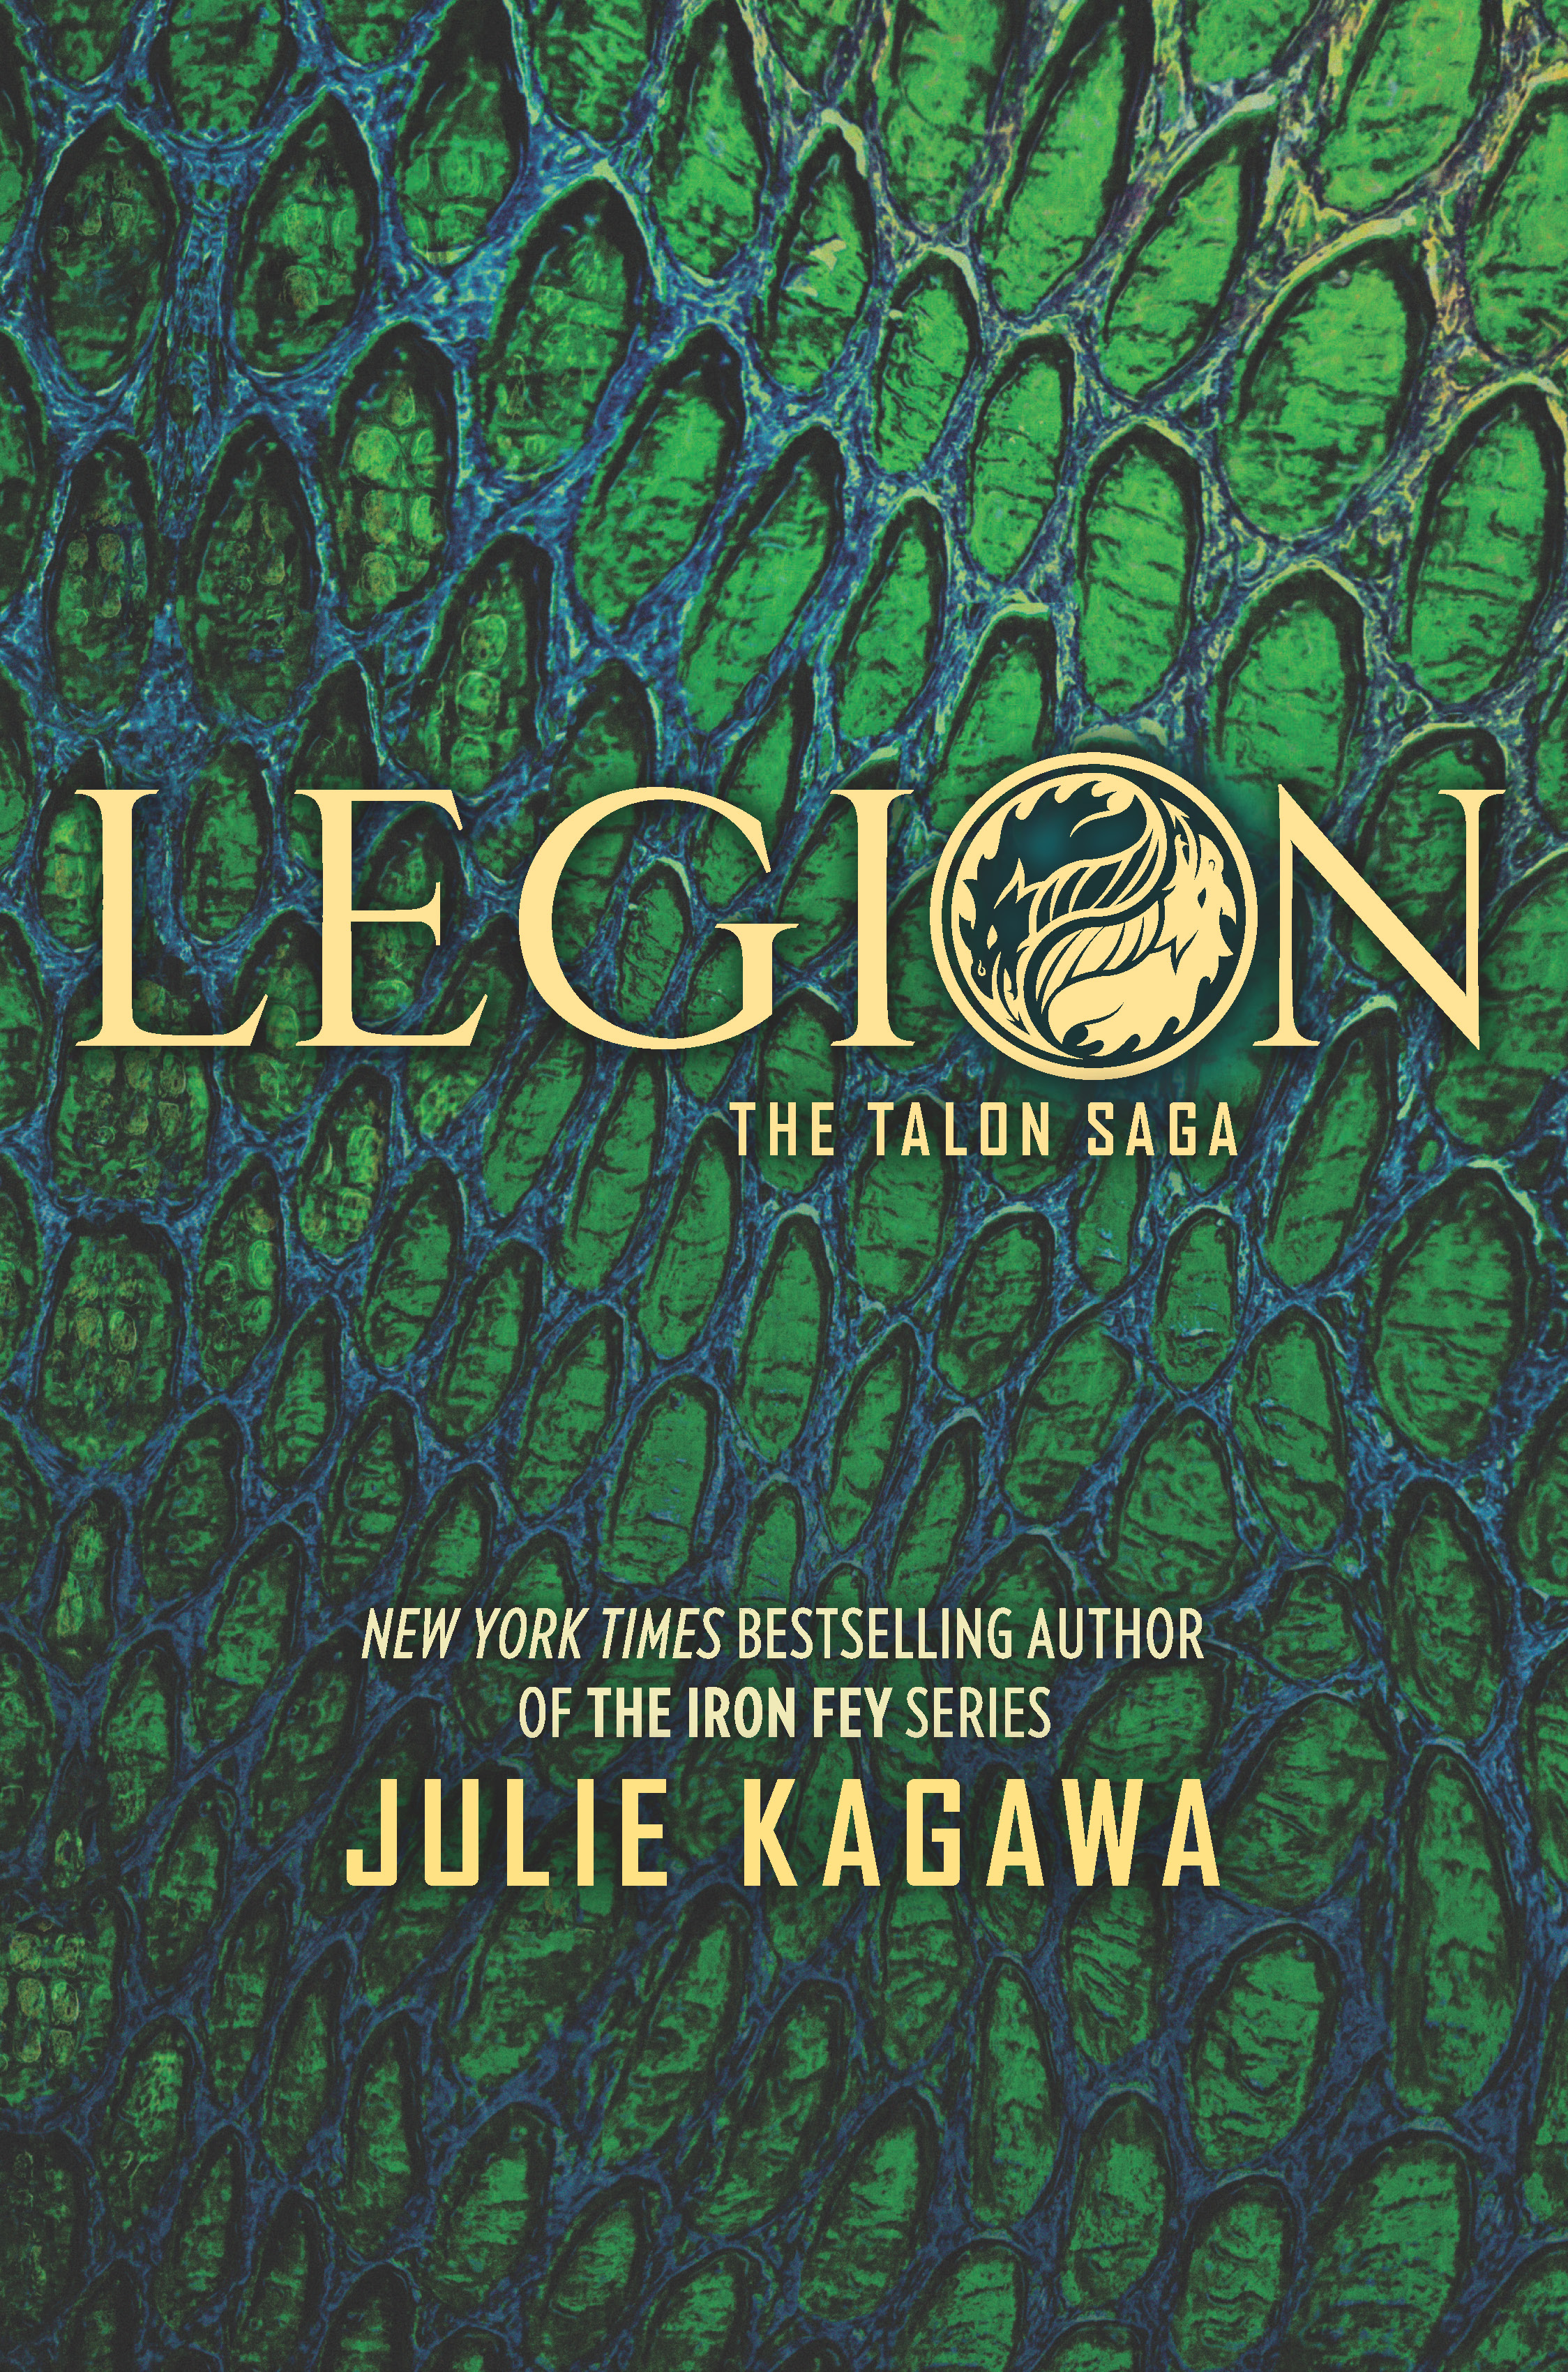 Legion (Book 4, Talon series)